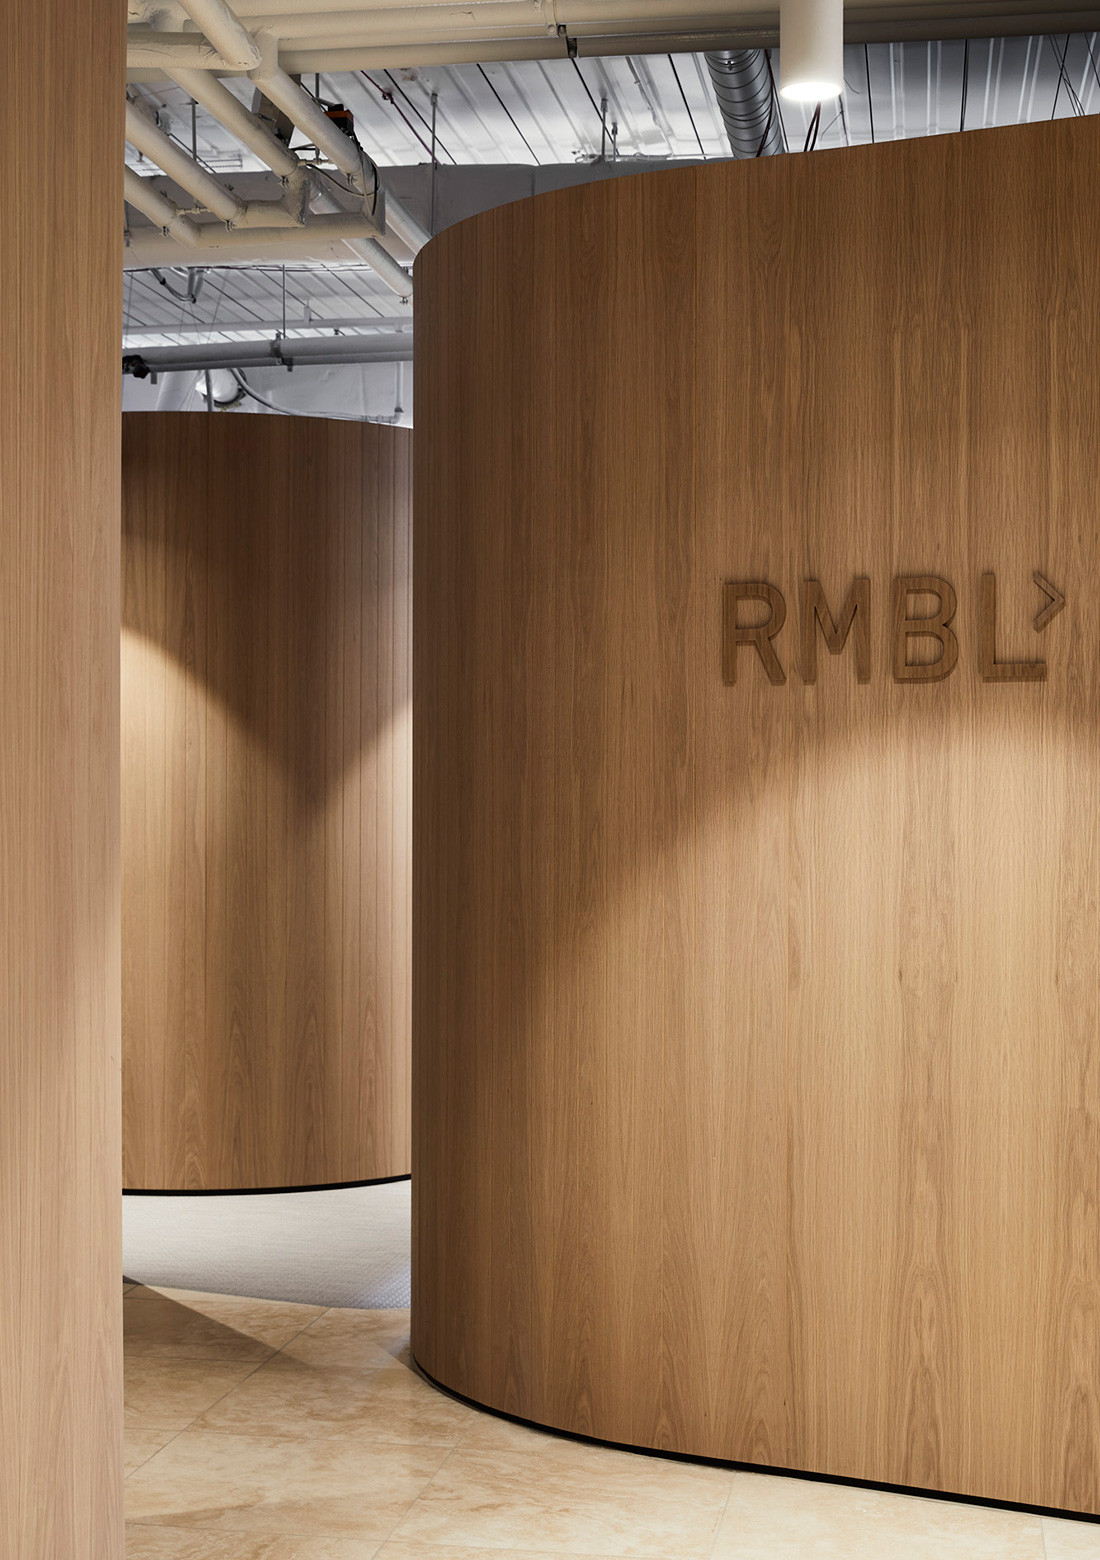 RMBL activity based working model by Golden